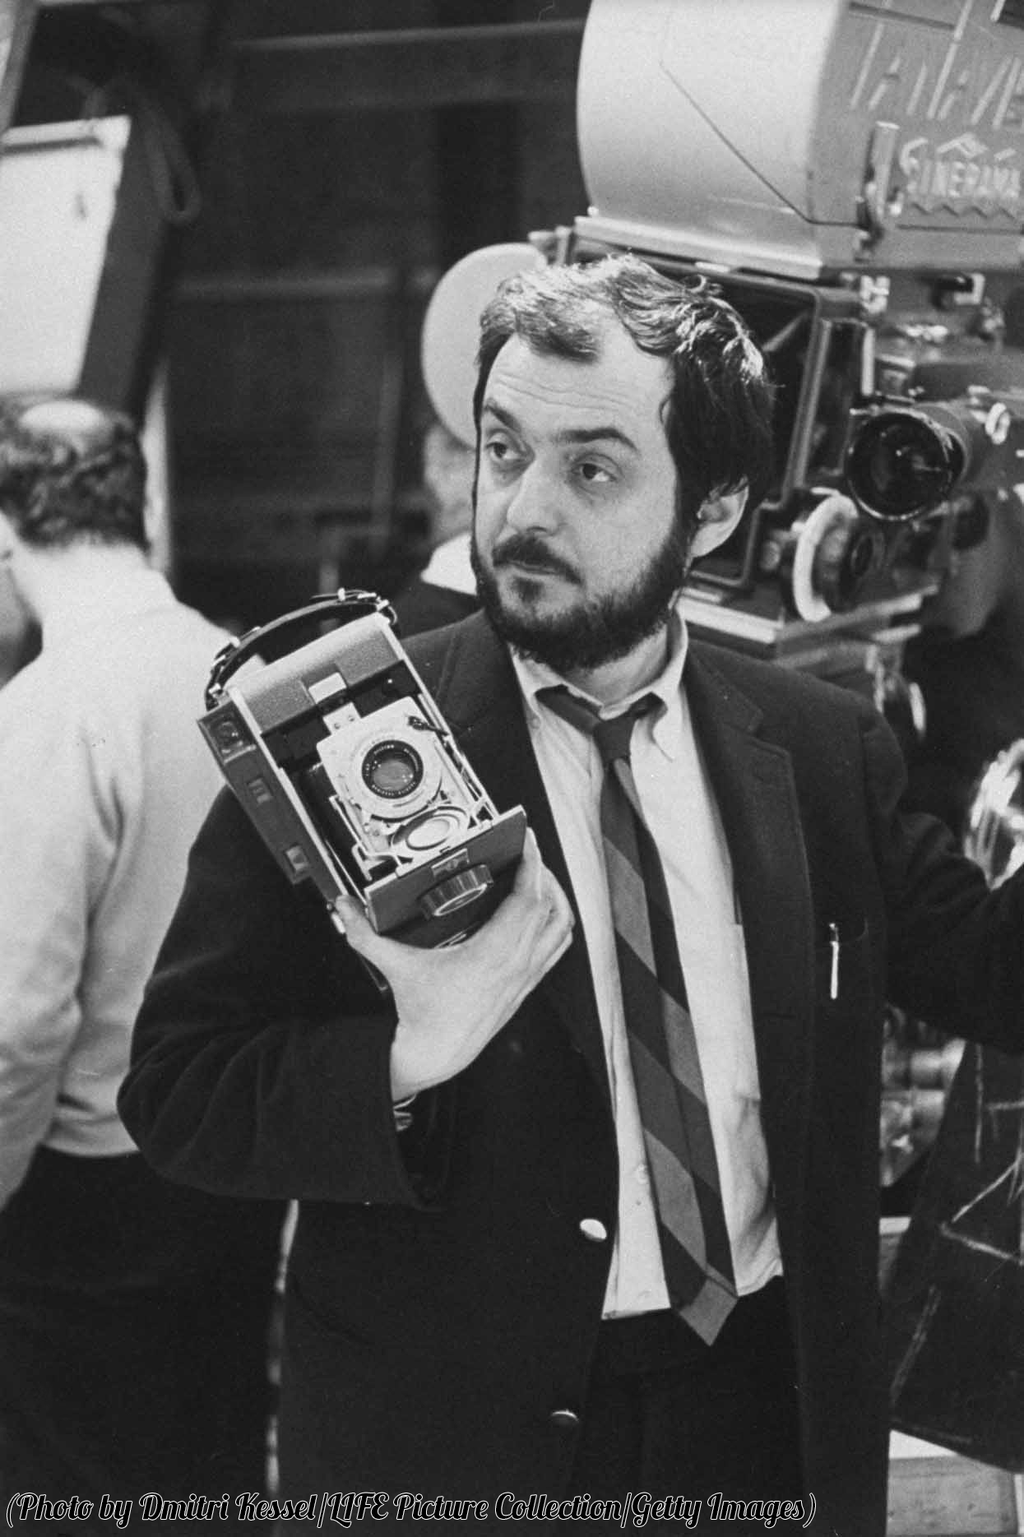 Stanley Kubrick holding a polaroid camera during the filming of 2001: A Space Odyssey, 1966.